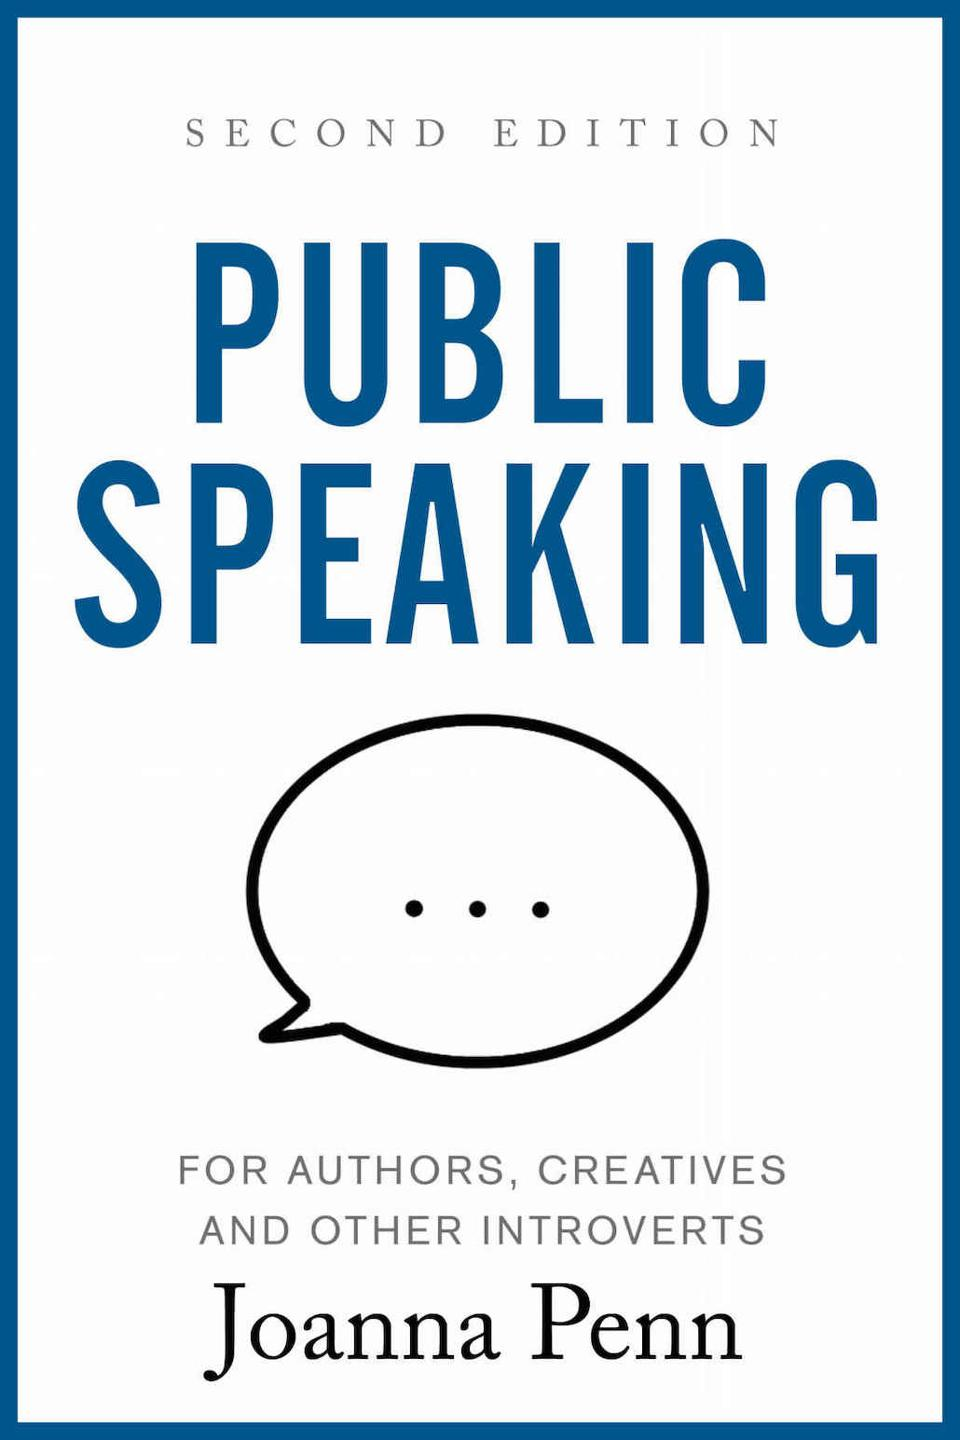 Public Speaking for Authors, Creatives and Other Introverts by Joanna Penn